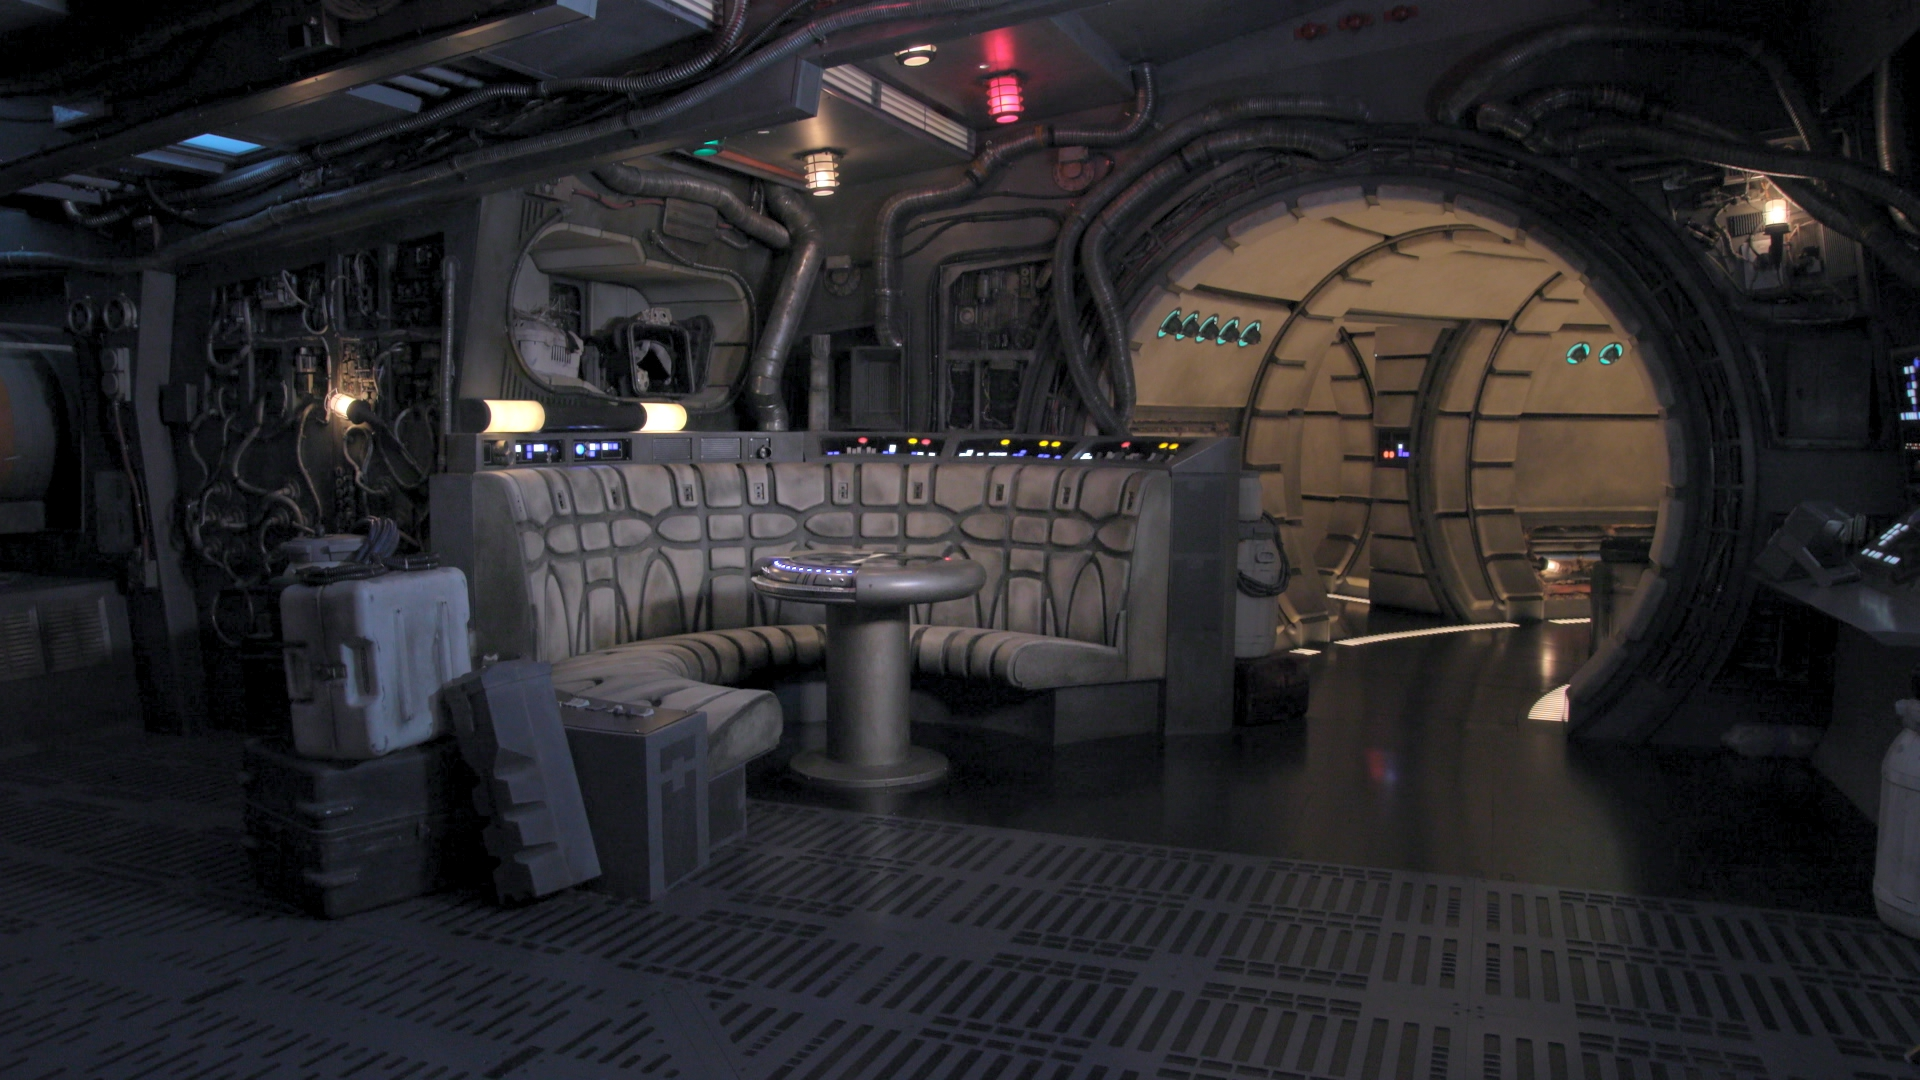 Star Wars: Galaxy's Edge - Color Grading / Post Production